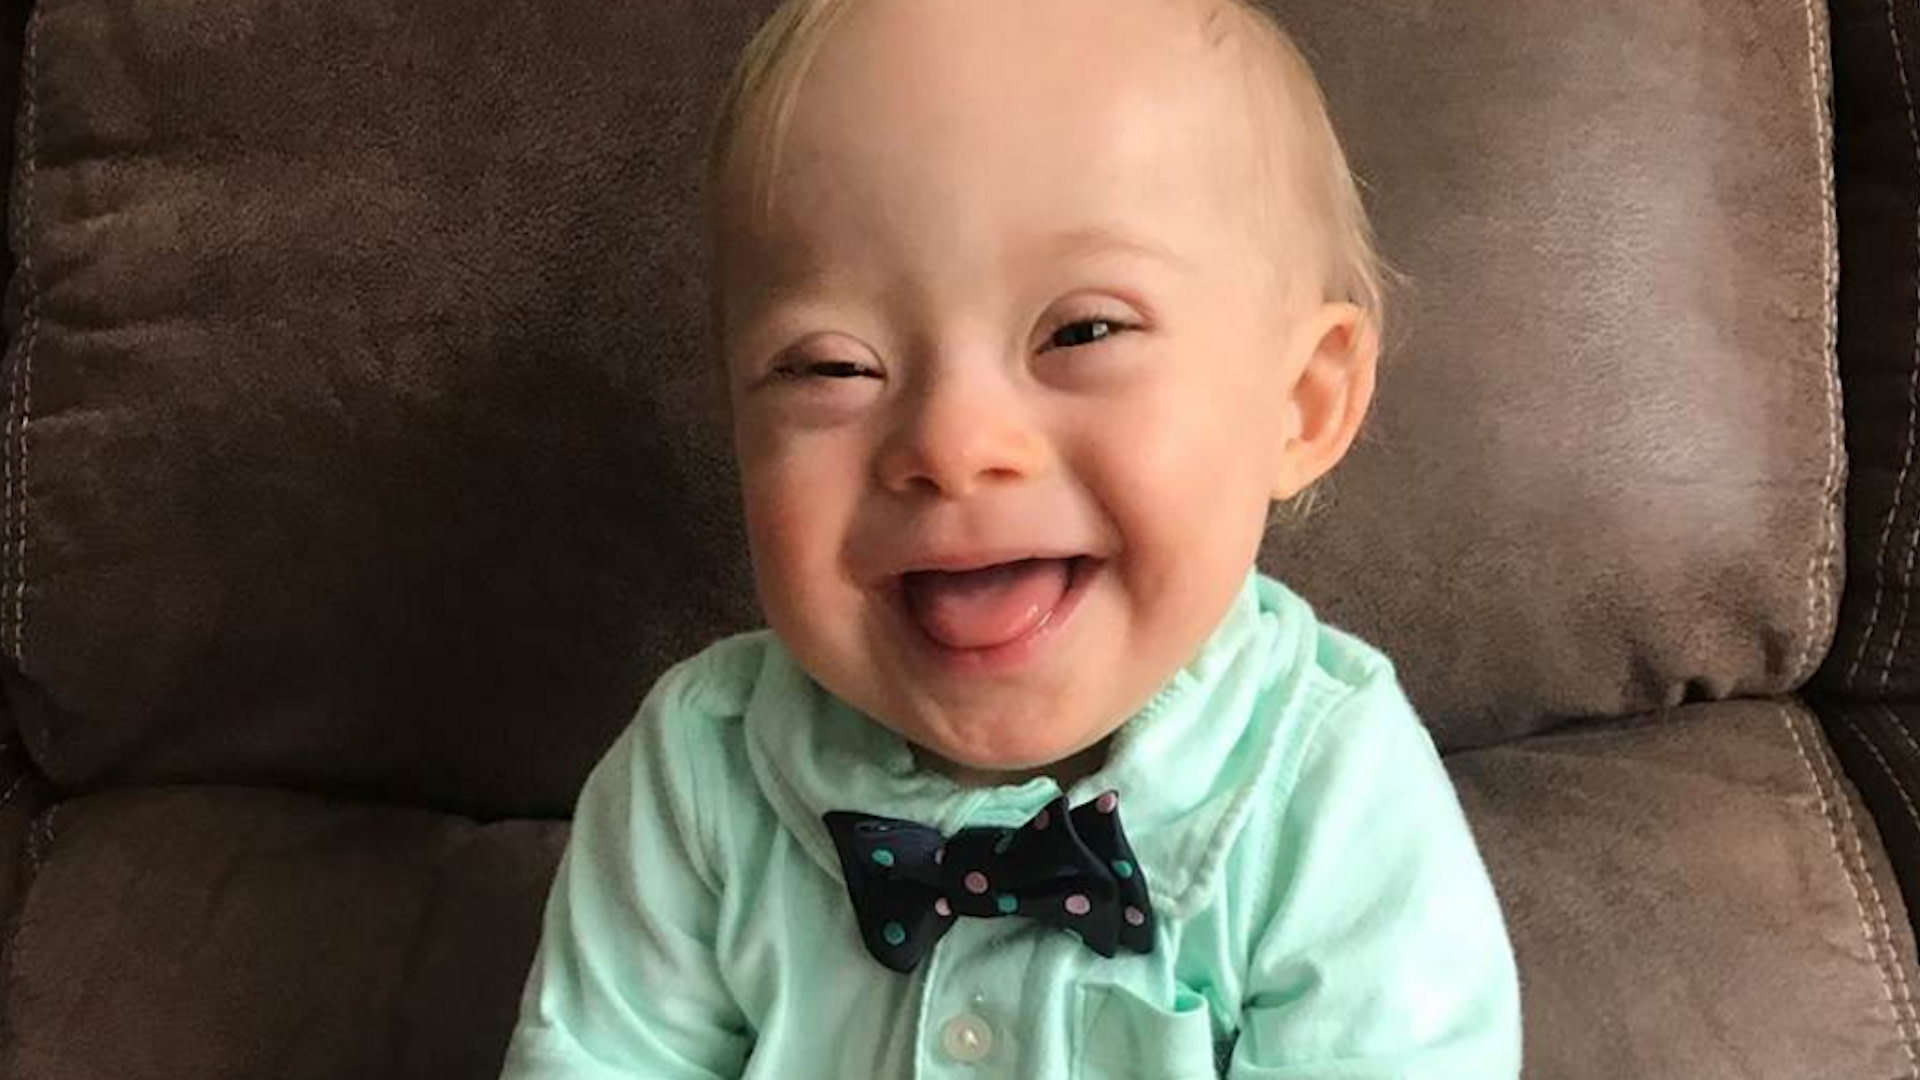 meet the first gerber baby with down syndrome - cnn video